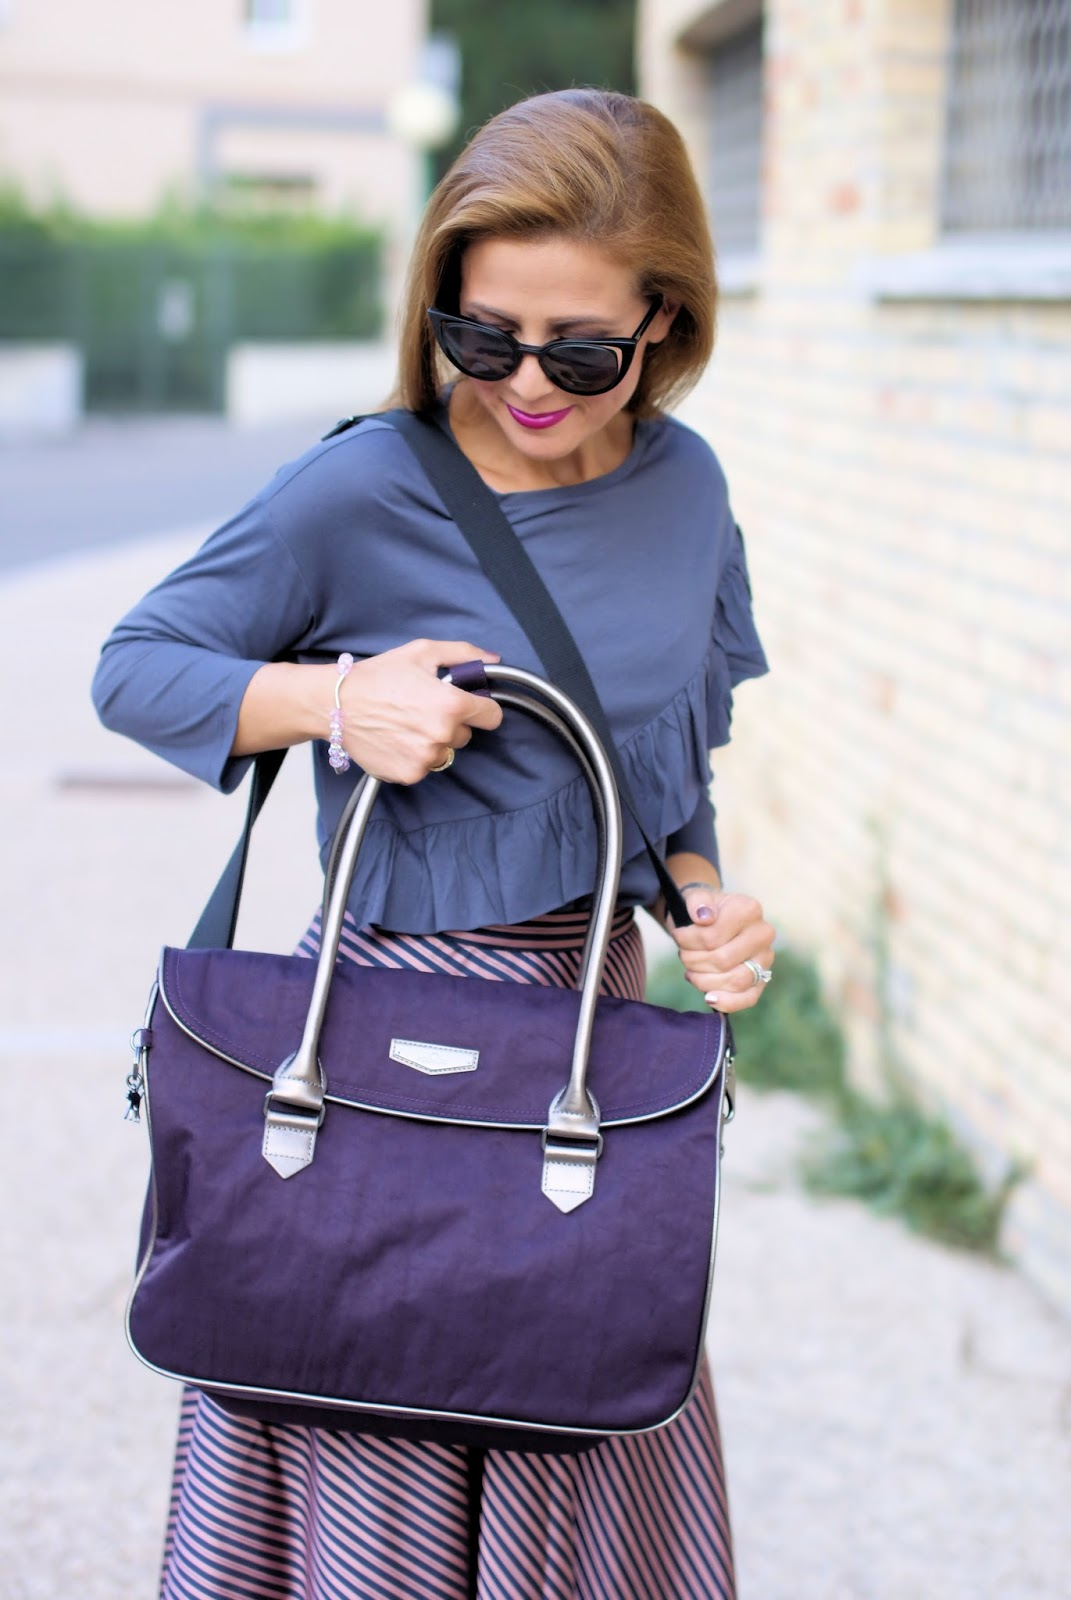 Kipling Superwork bag in deep velvet on Fashion and Cookies fashion blog, fashion blogger